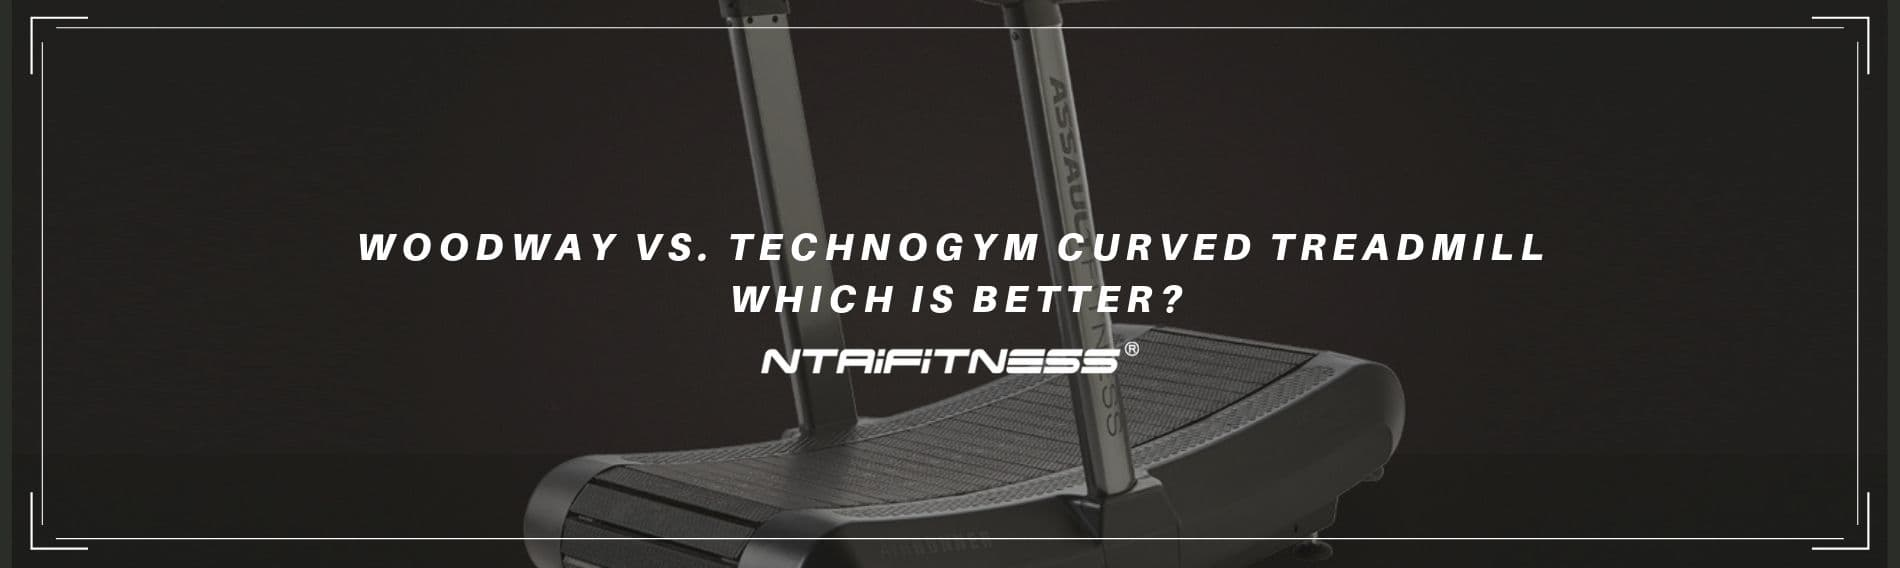 Woodway Vs. Technogym Curved Treadmill: Which Is Better?